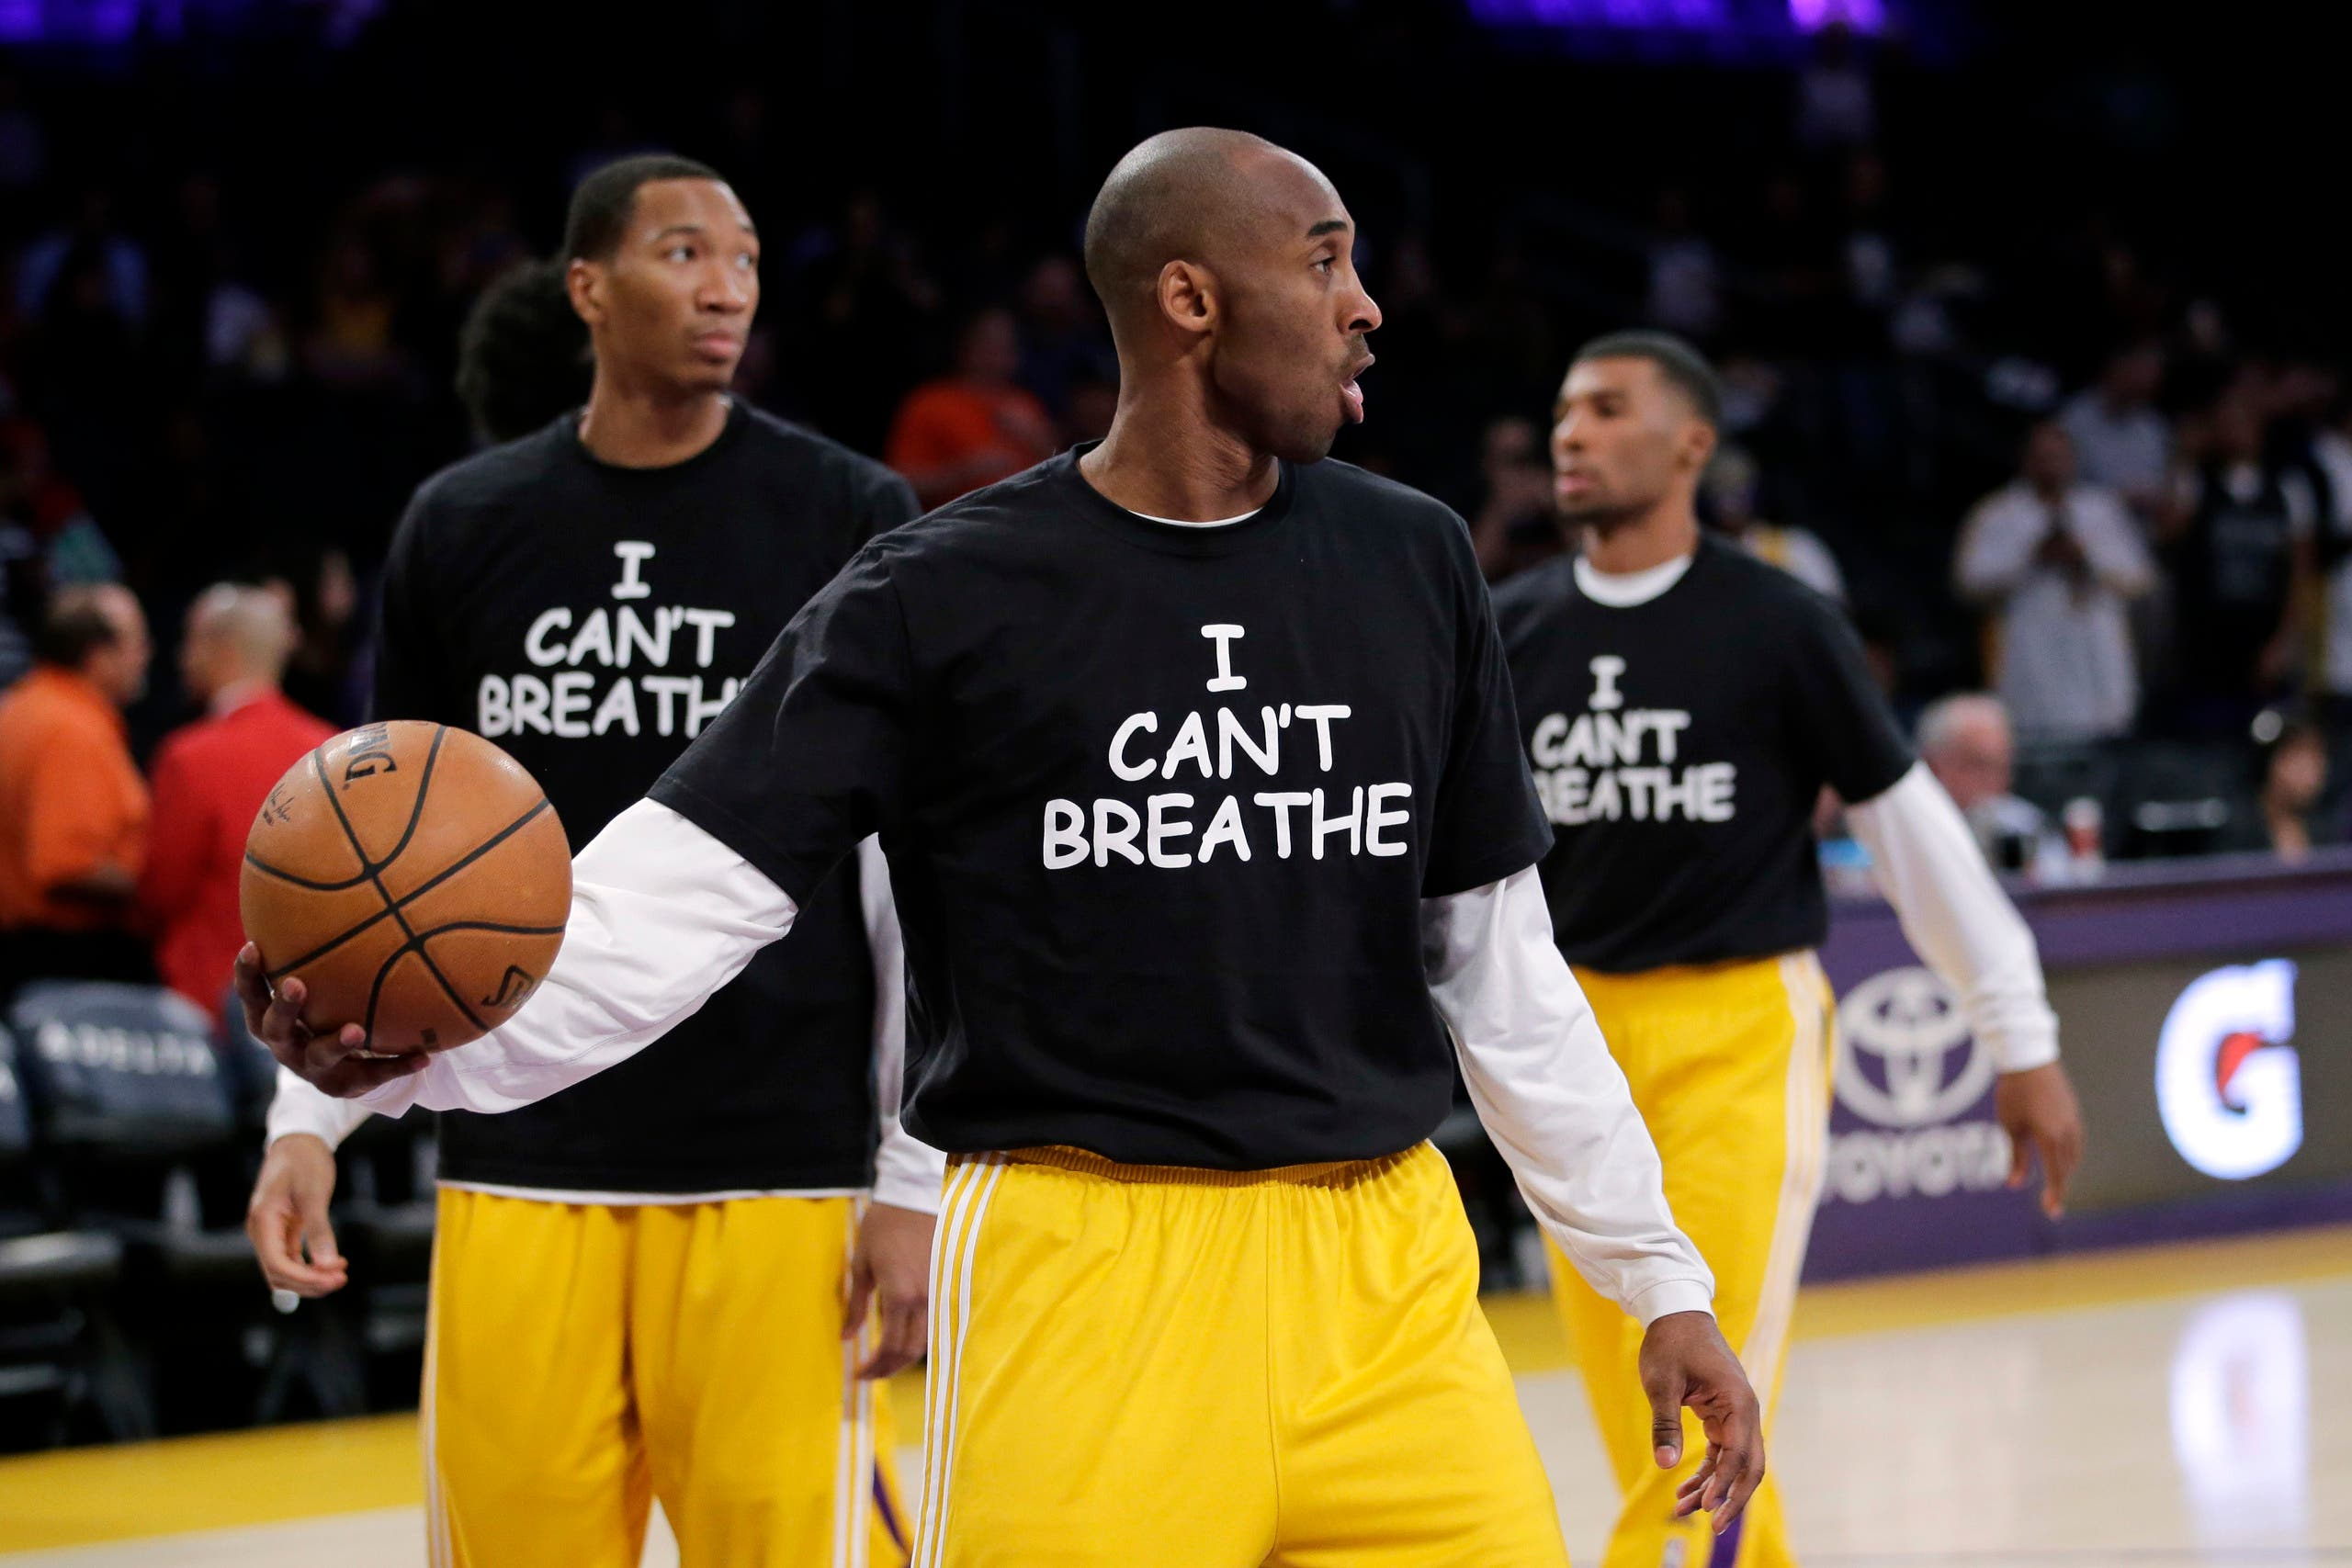 Kobe Bryant, center, and his teammates warm up before an NBA basketball game against the Sacramento Kings, Tuesday, Dec. 9, 2014, in Los Angeles. (AP)